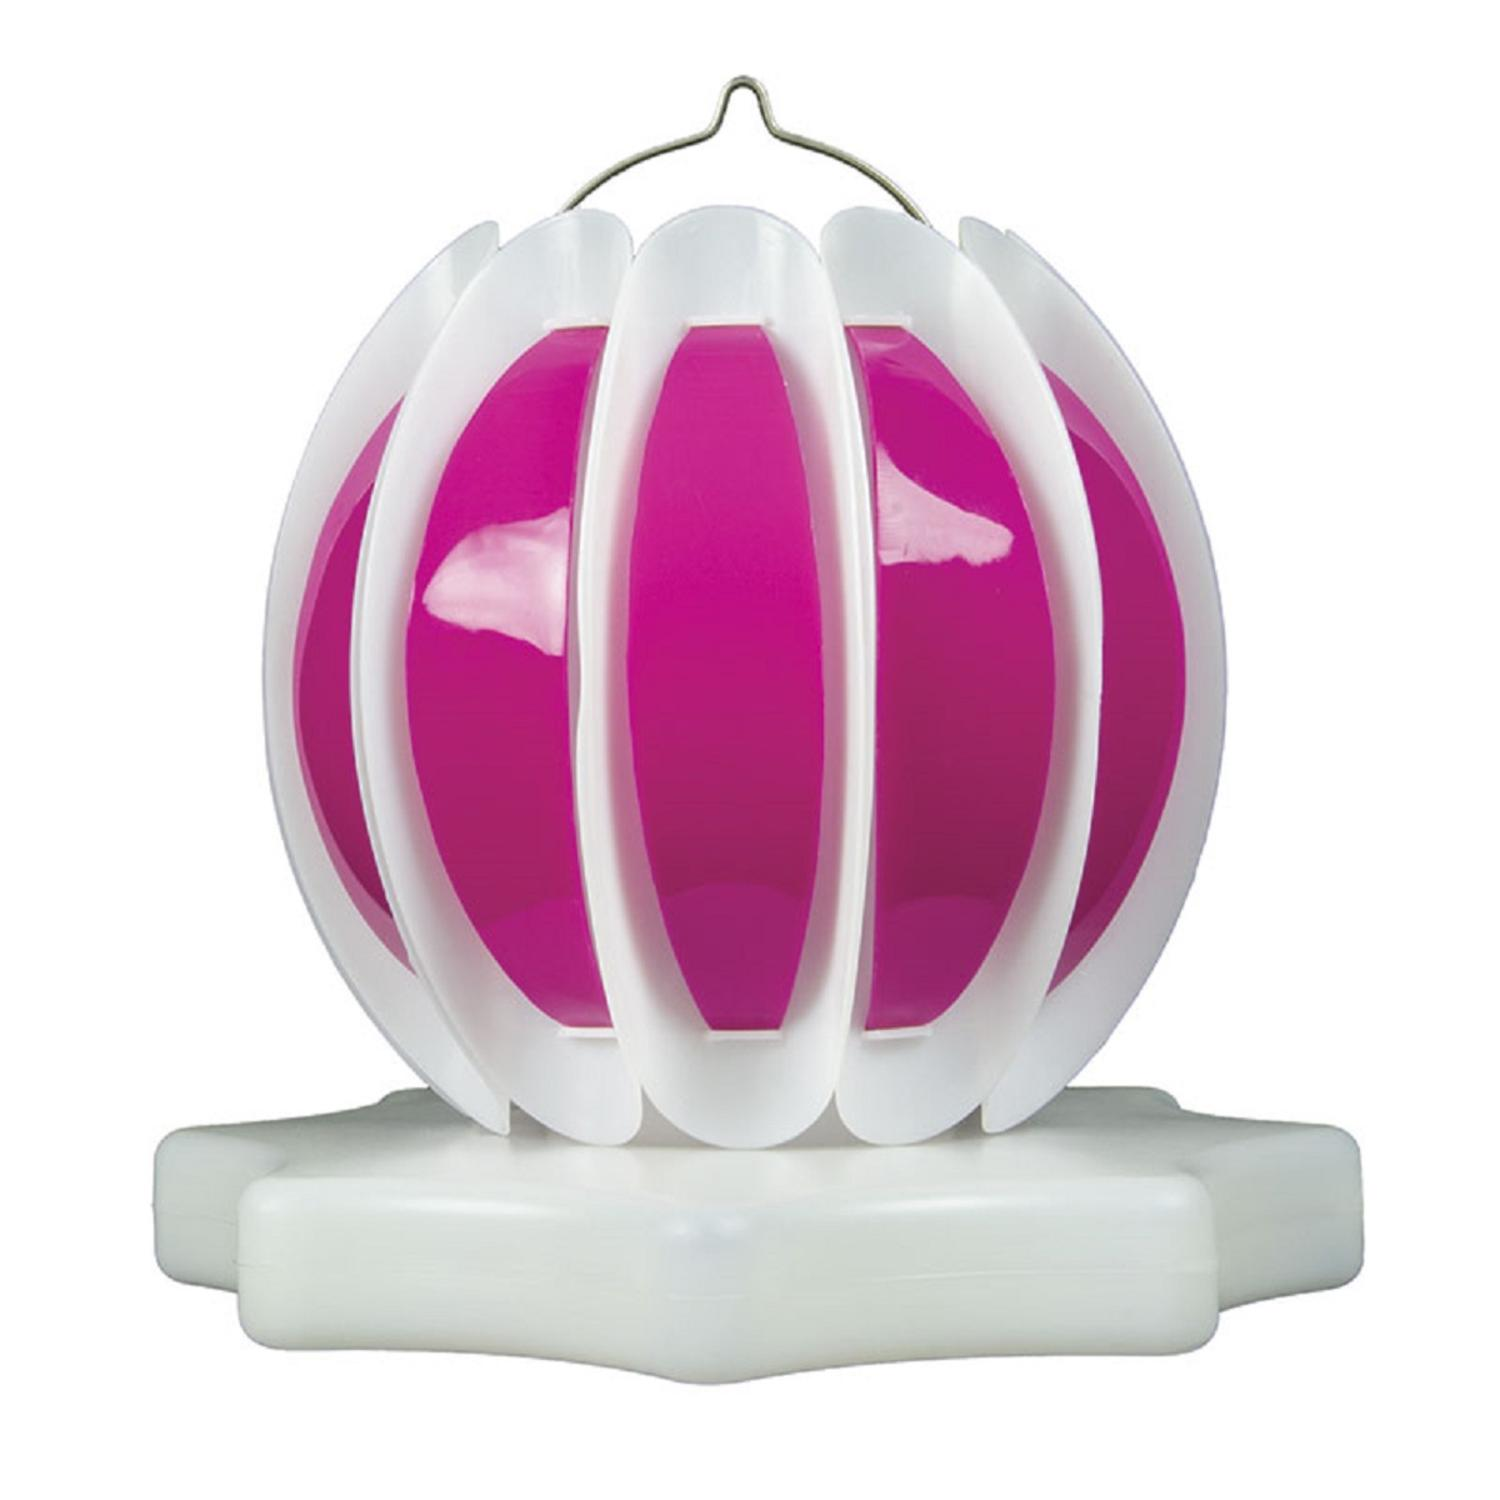 Set of 2 Pink and White Floating or Hanging Solar Powered Outdoor Decorative Lanterns